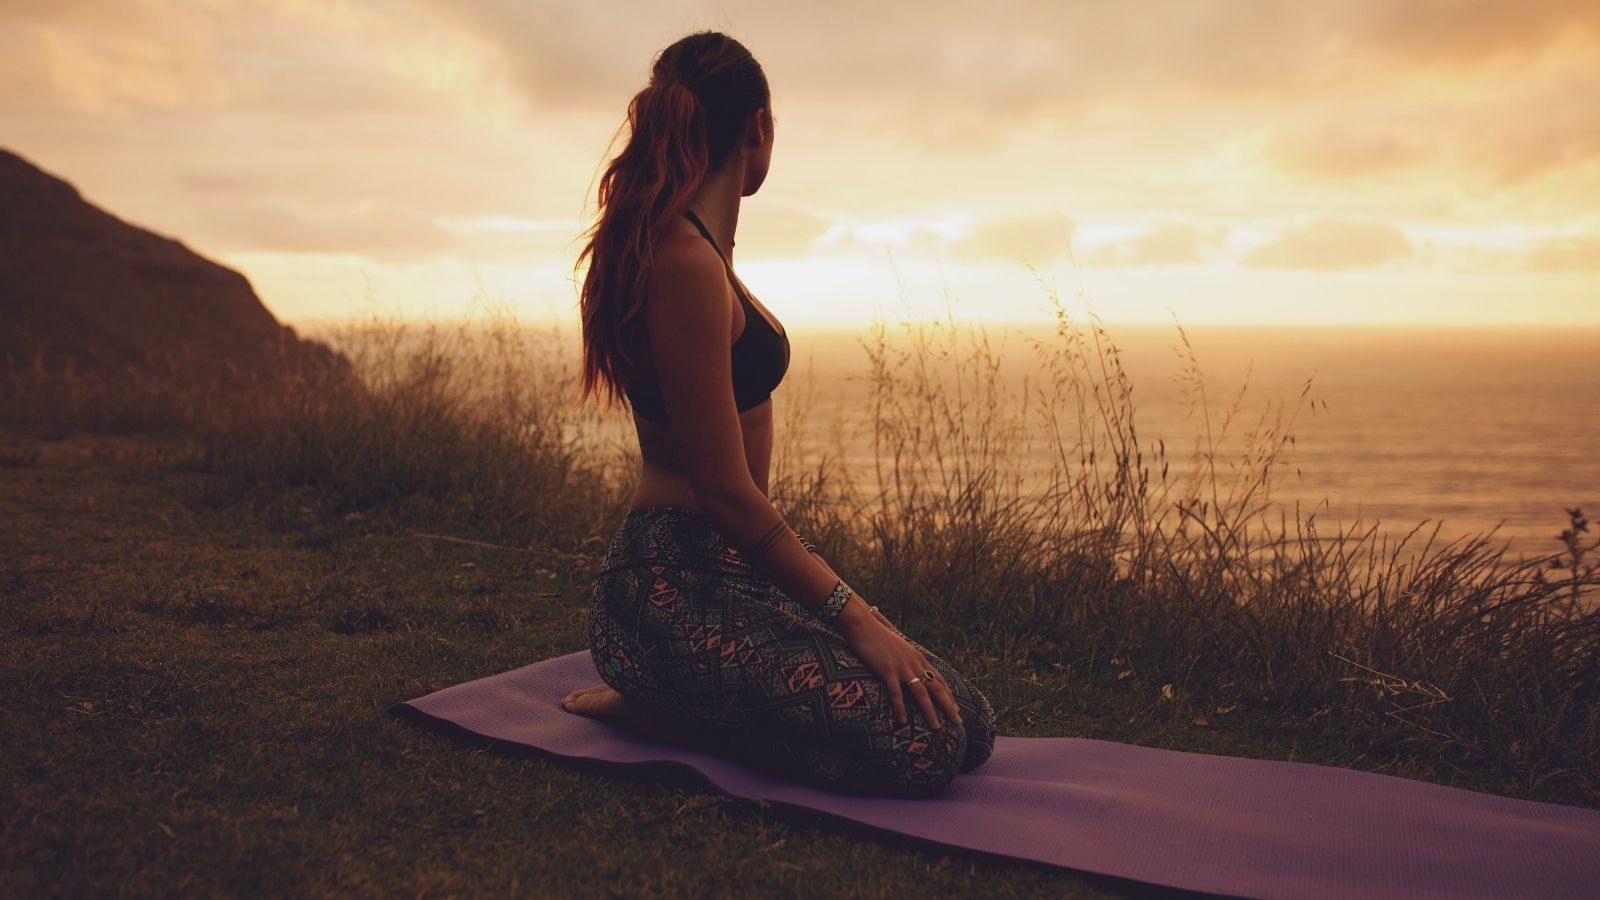 Woman on a yoga mat outdoors during sunset to improve work-life balance and mental wellness.